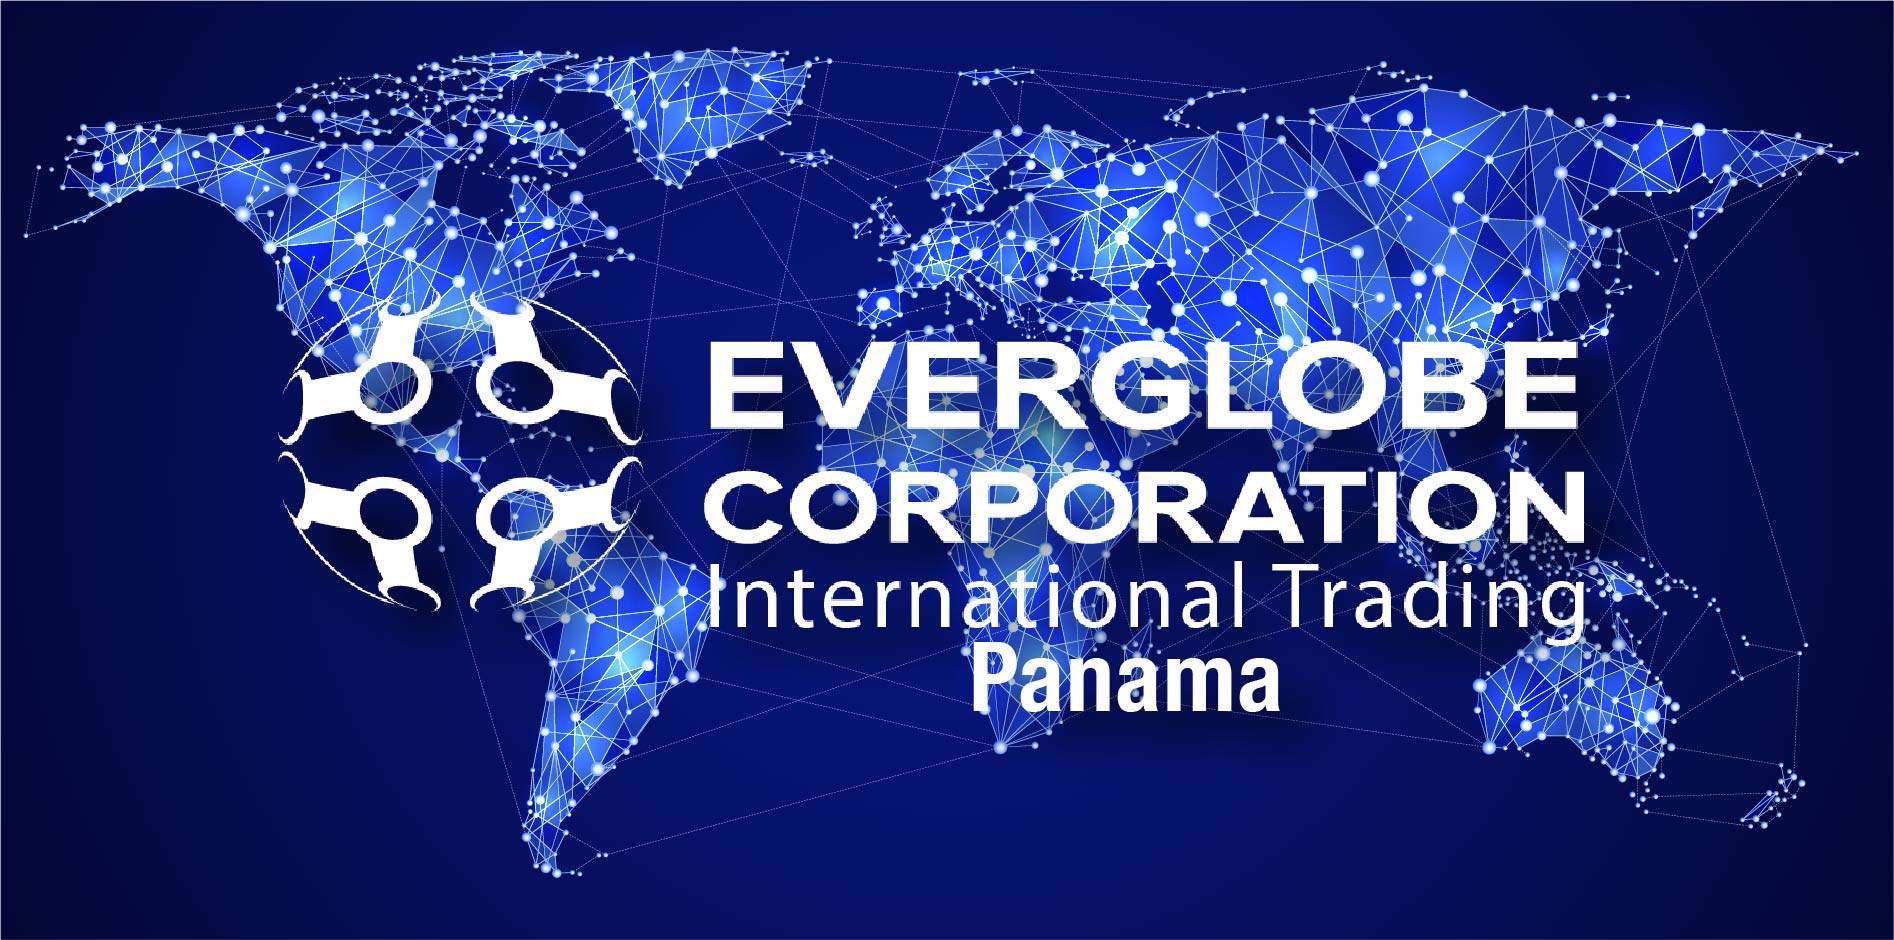 The map of the world with the Everglobe Corp Panama logo.